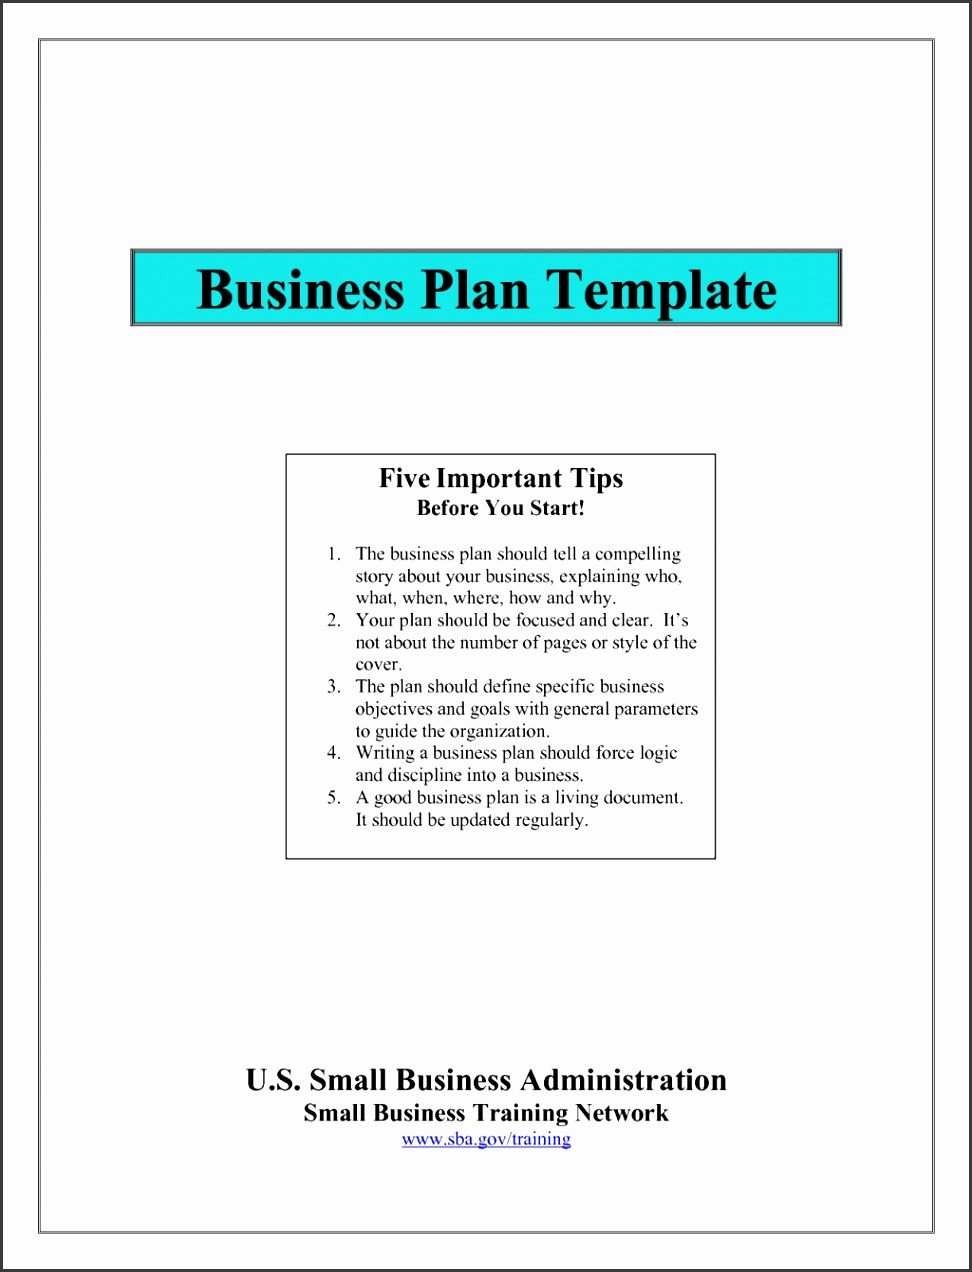 Sba Business Plan Template Free 1024x1326 Startup Example Small